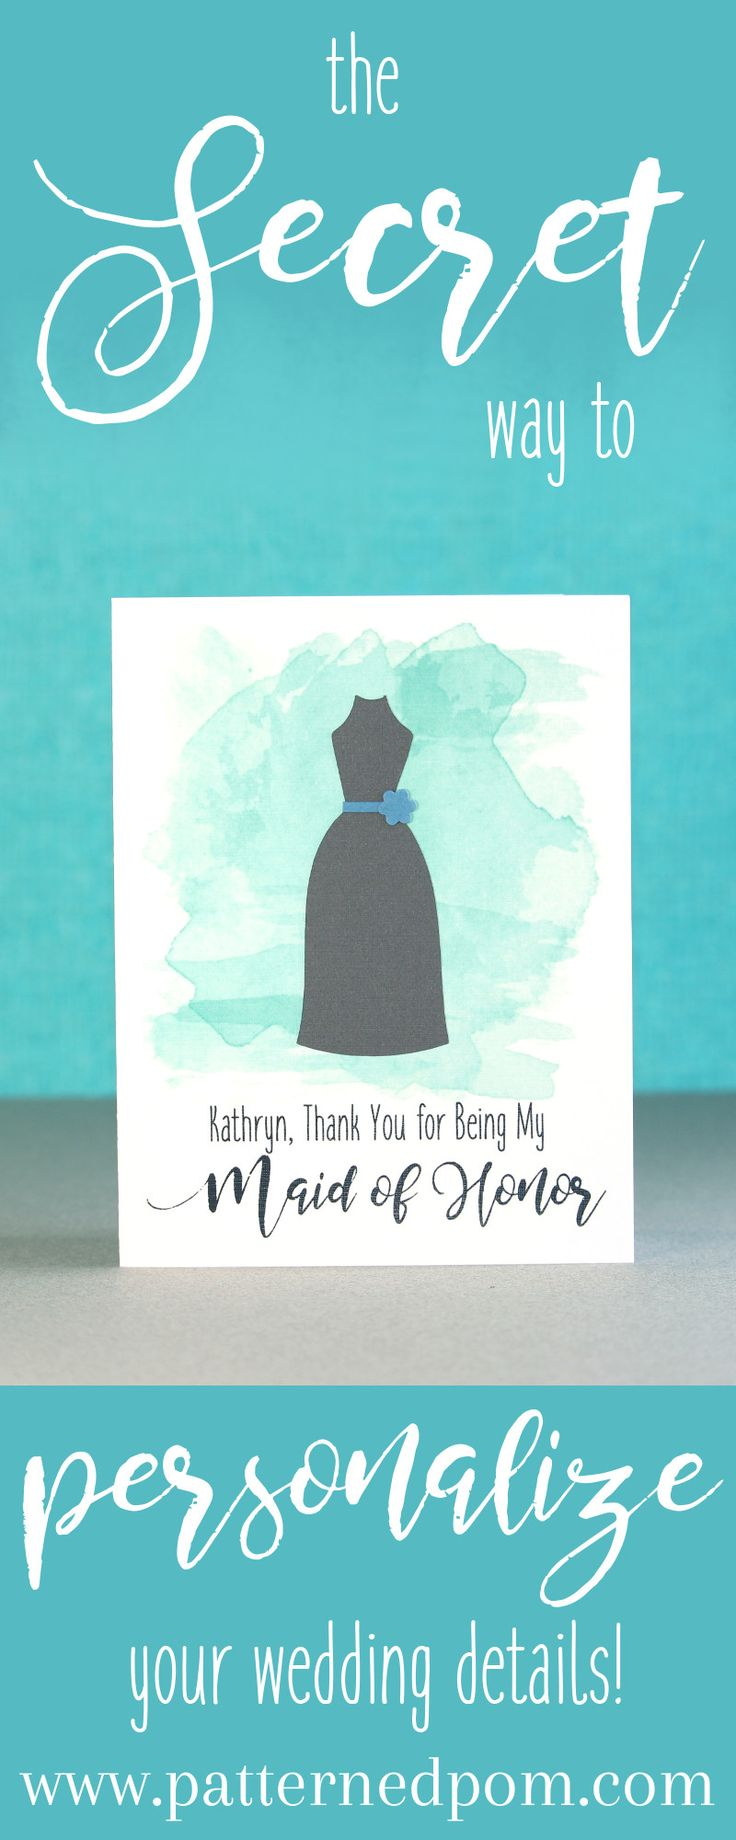 wedding thank you cards time limit%0A Adorable handmade Maid of Honor thank you card with watercolor   www patternedpom com